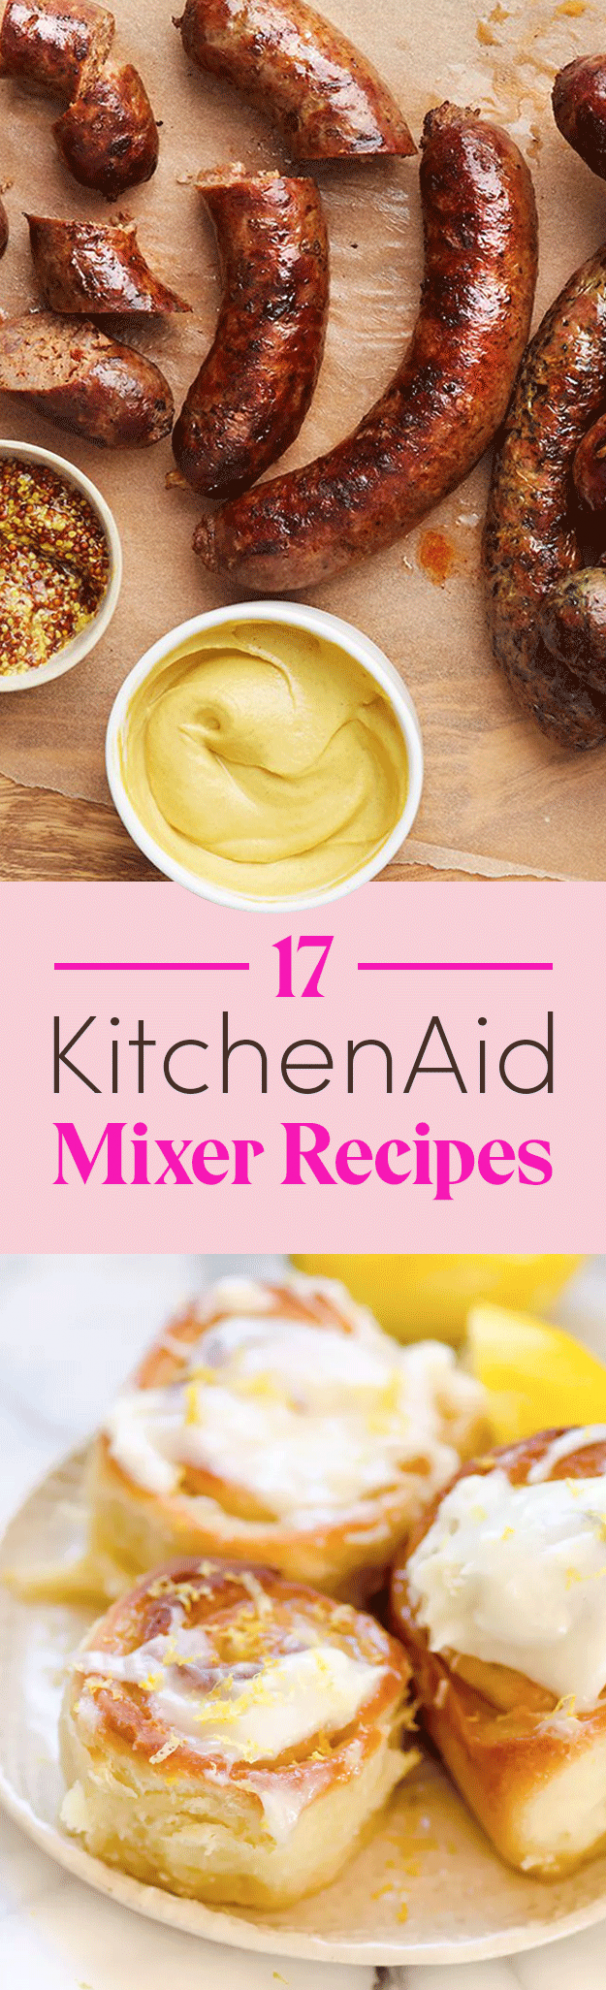 12 Things You Can Make In A KitchenAid Mixer - Dessert Recipes Kitchenaid Mixer